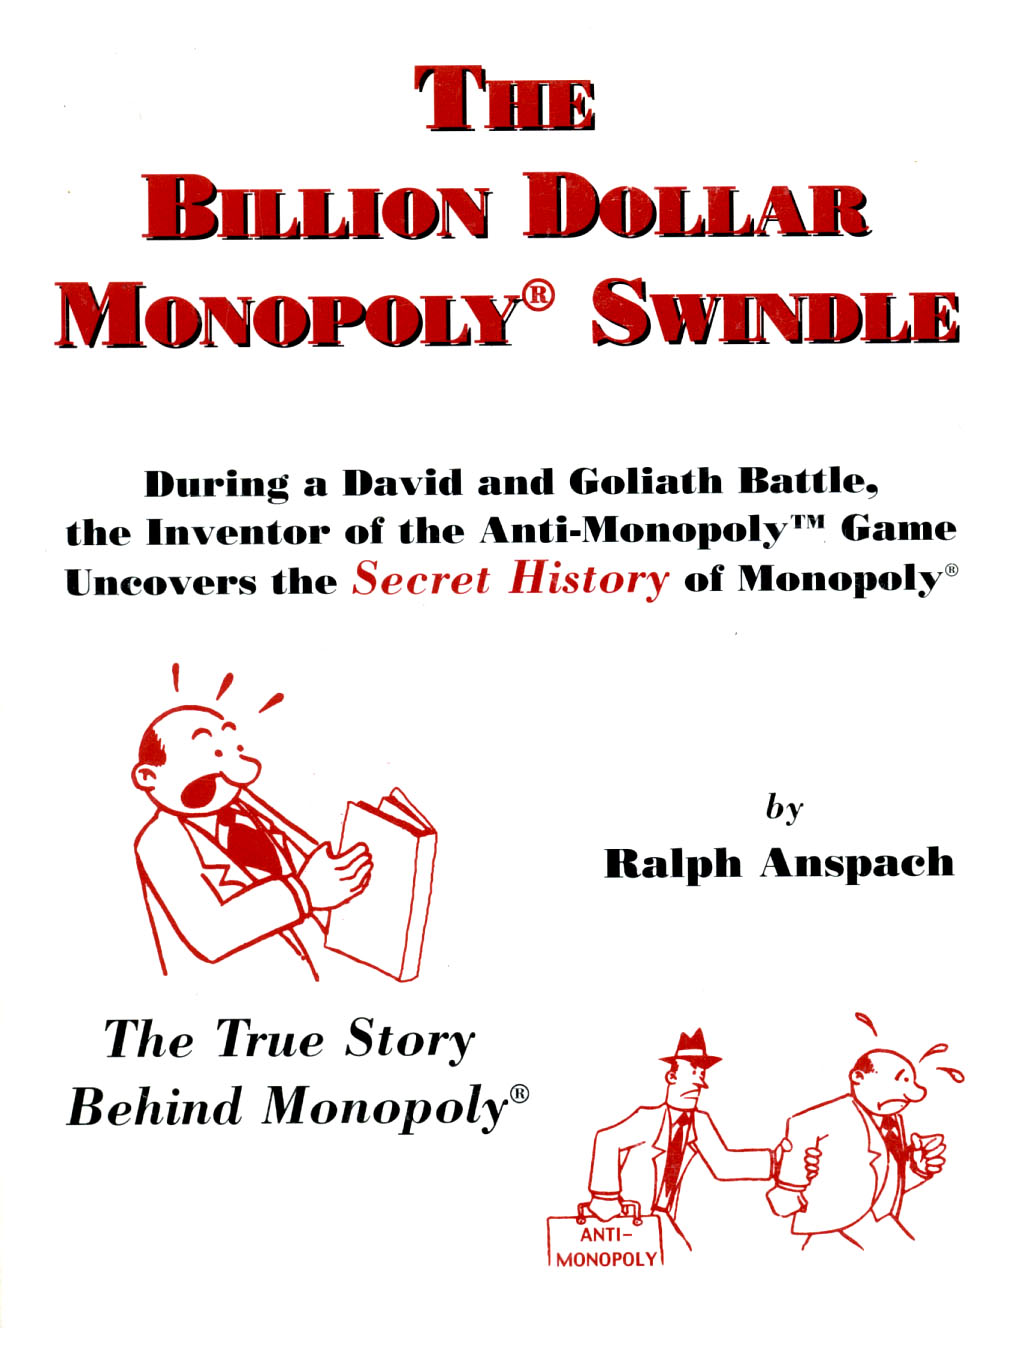 The Billion Dollar Monopoly Swindle